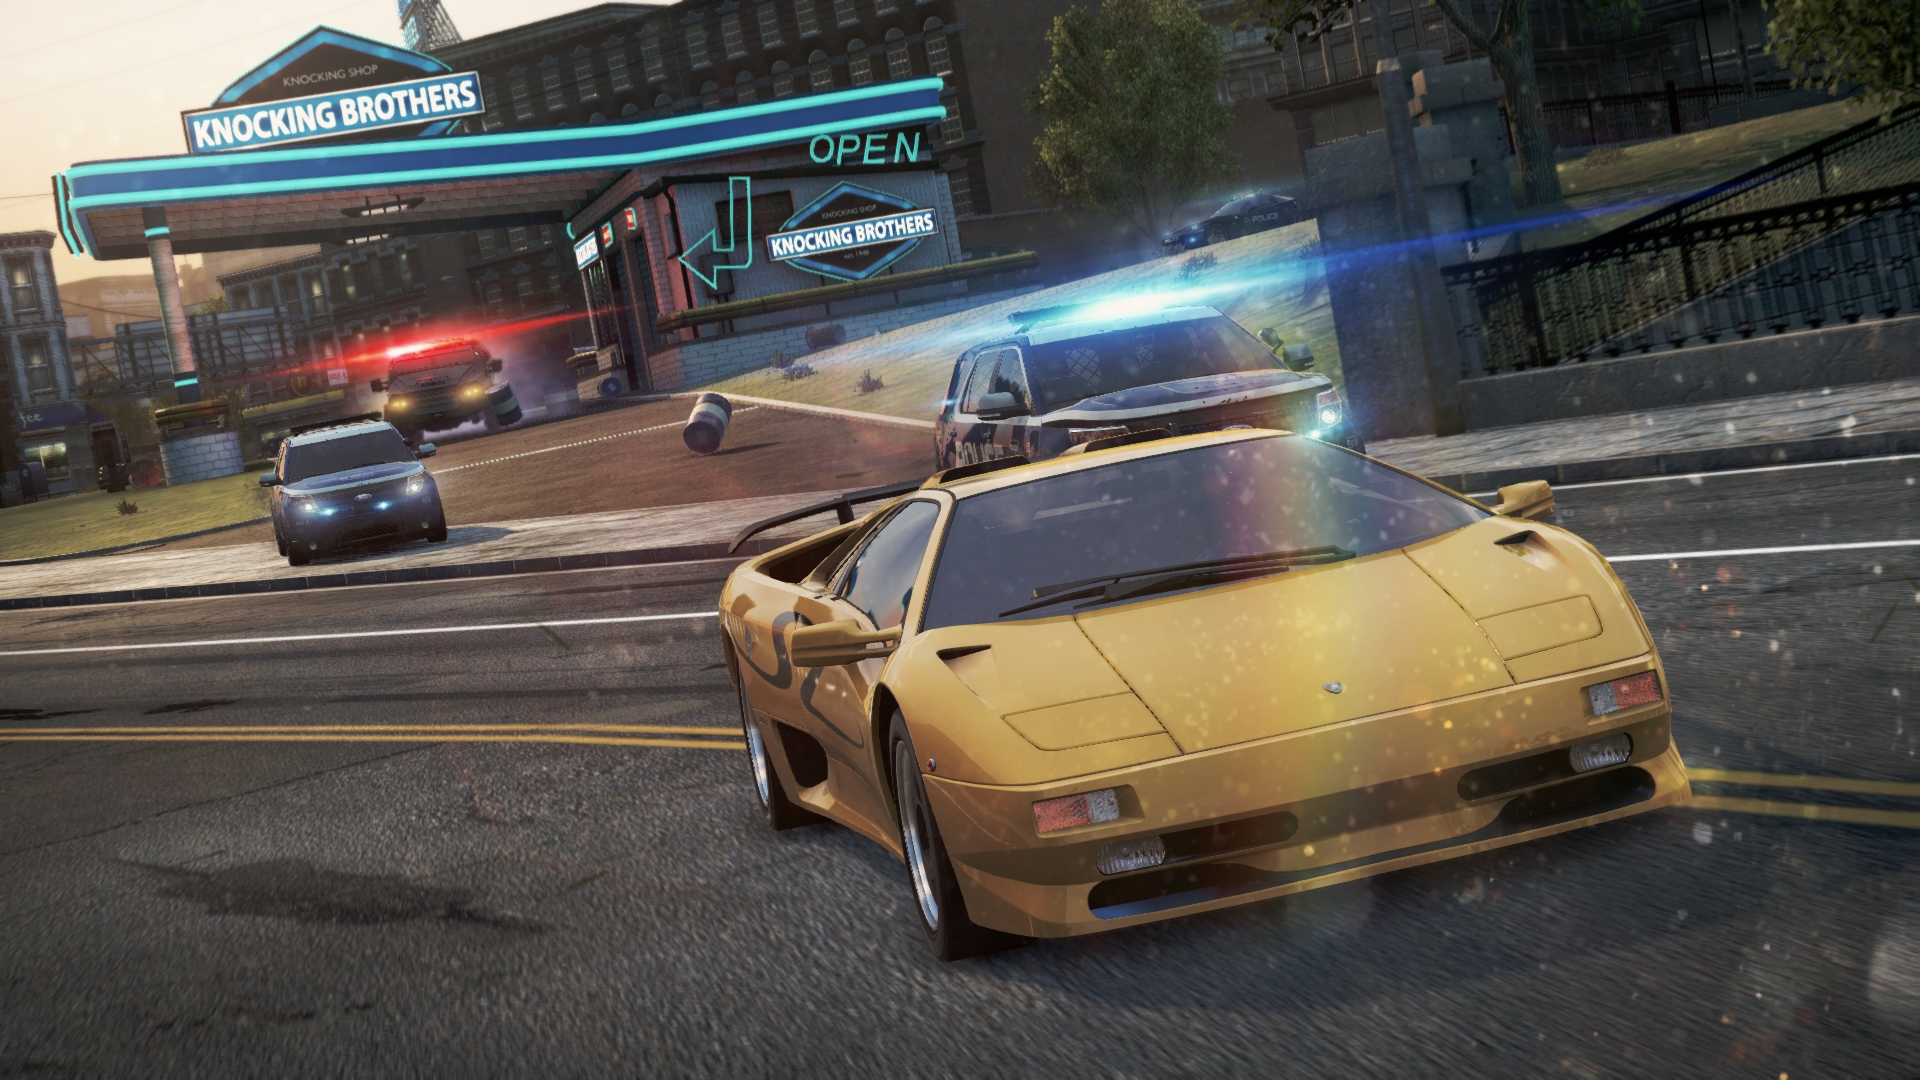 MW2012DiabloSVPursuit Pursuit Is A Singleplayer Game Mode Featured In Need For Speed Most Wanted 2012